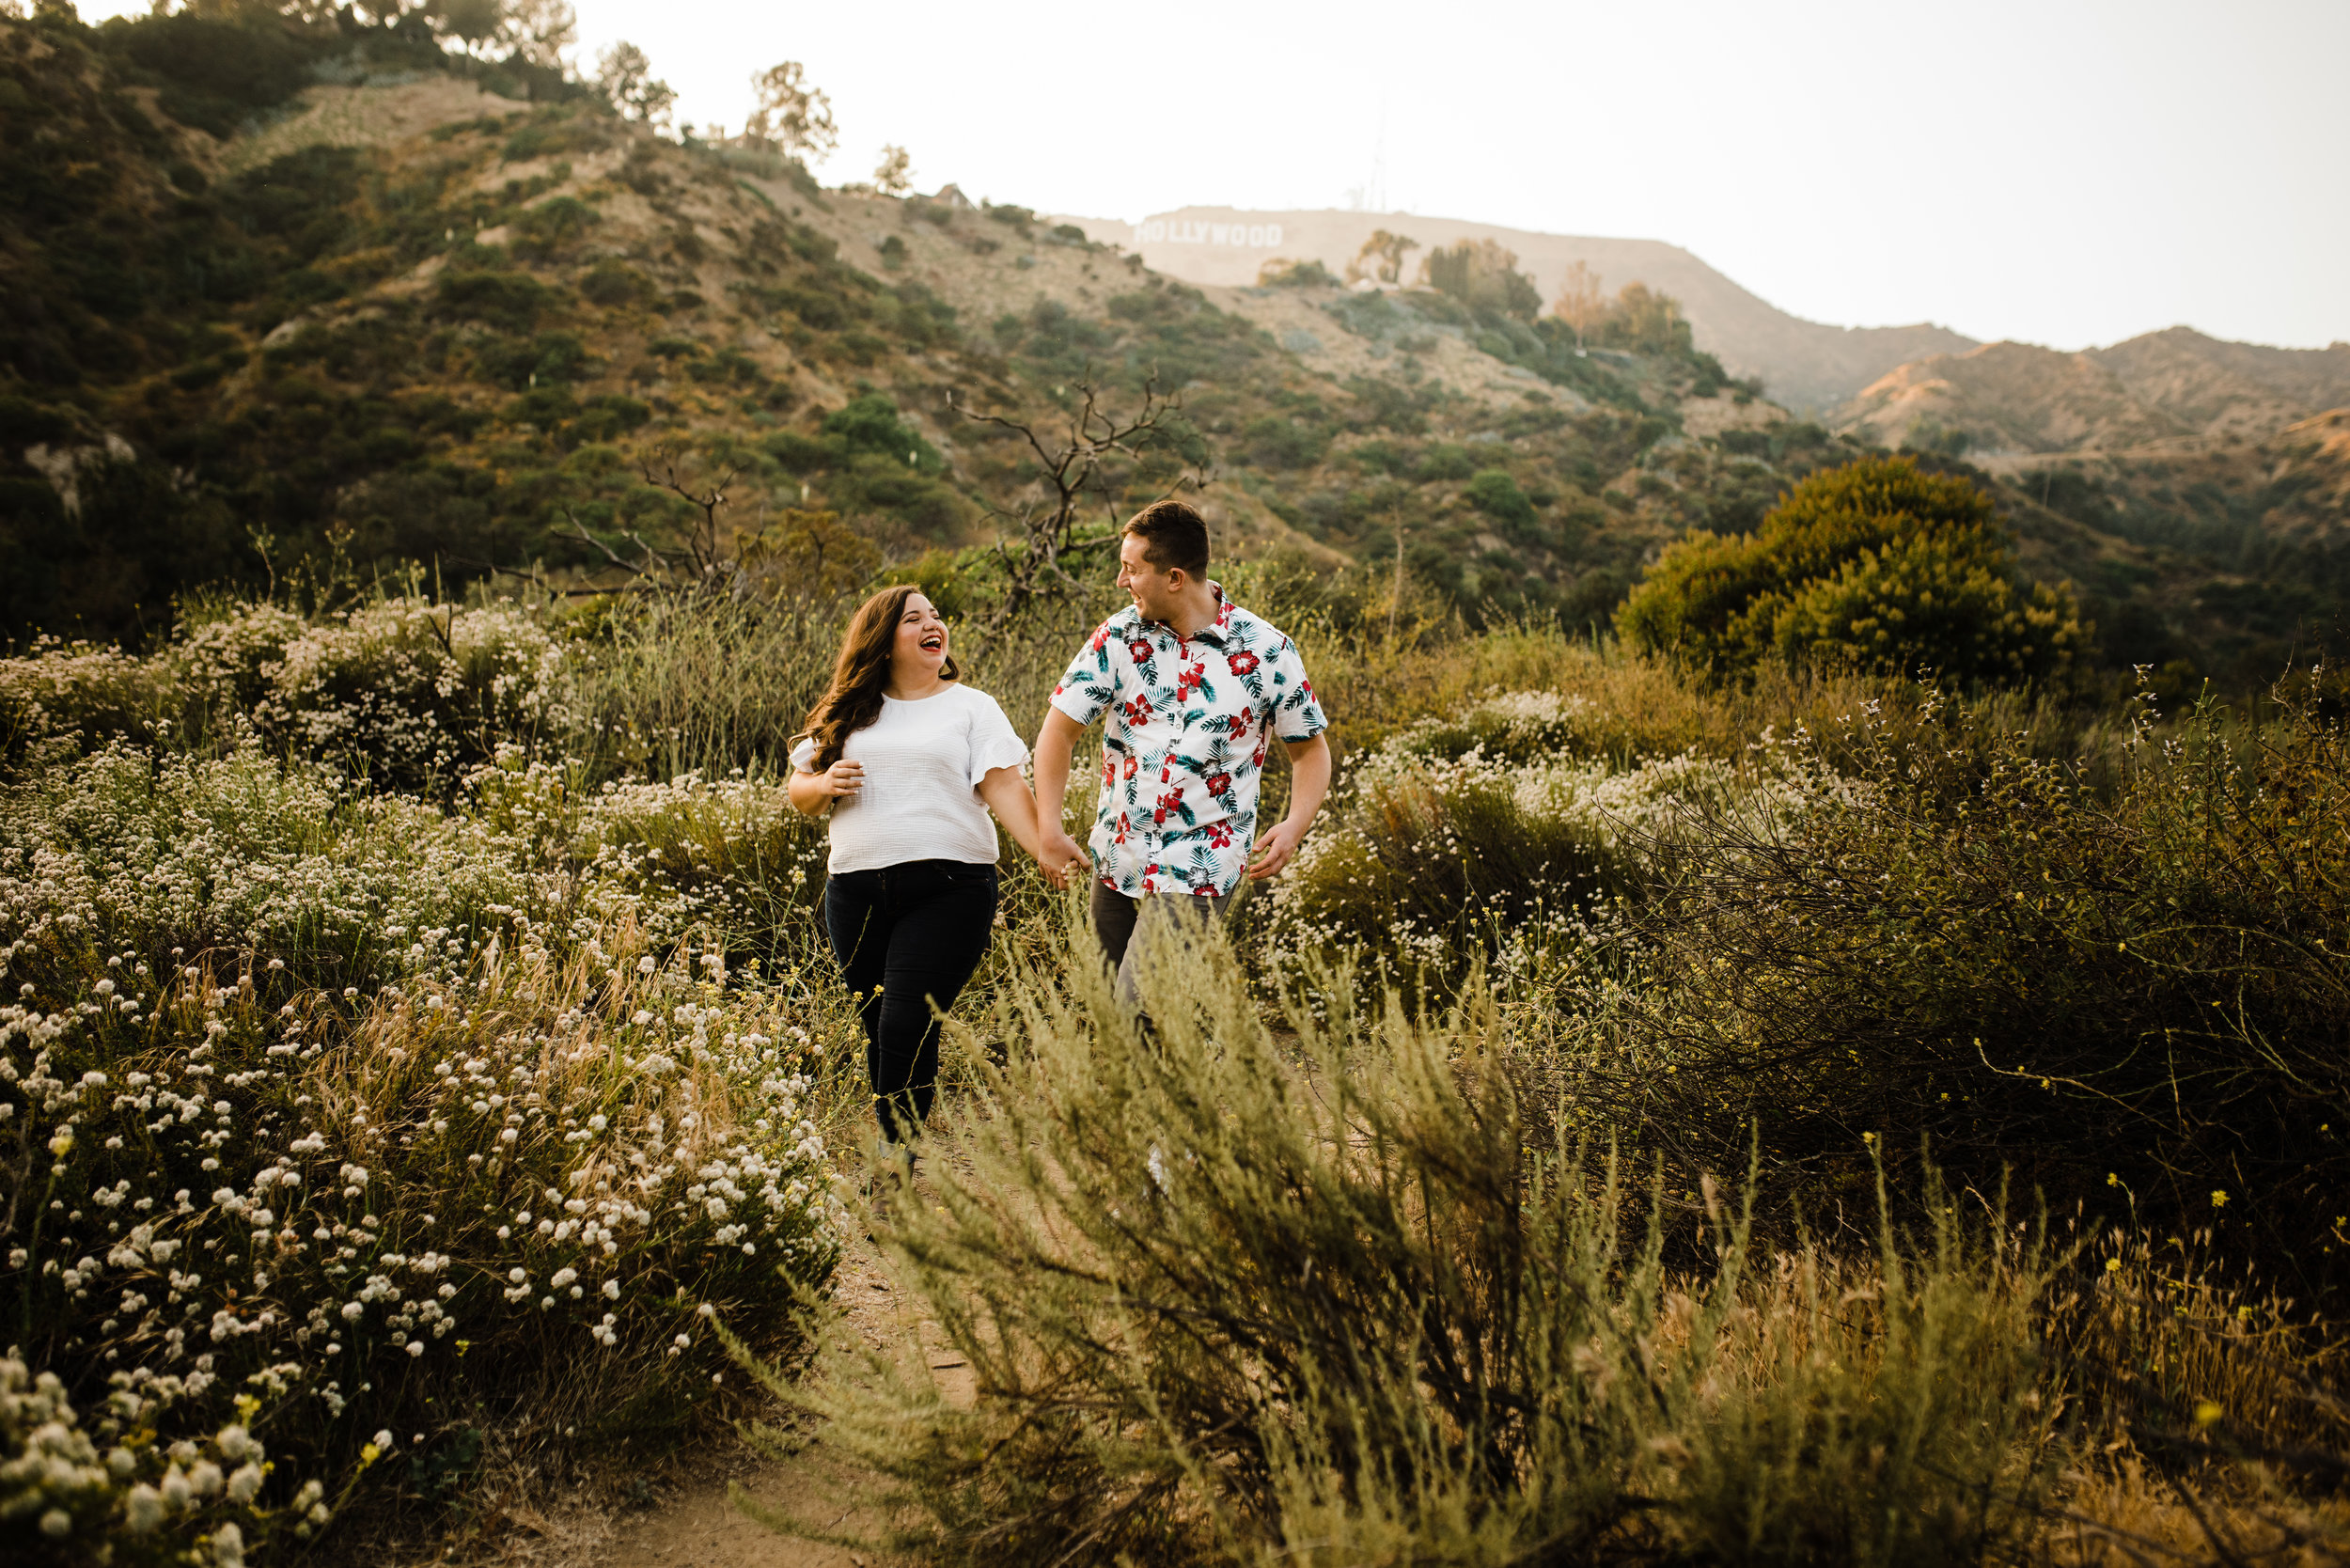 Couple hiking the trails of Bronson Canyon for their adventurous Los Angeles engagement session